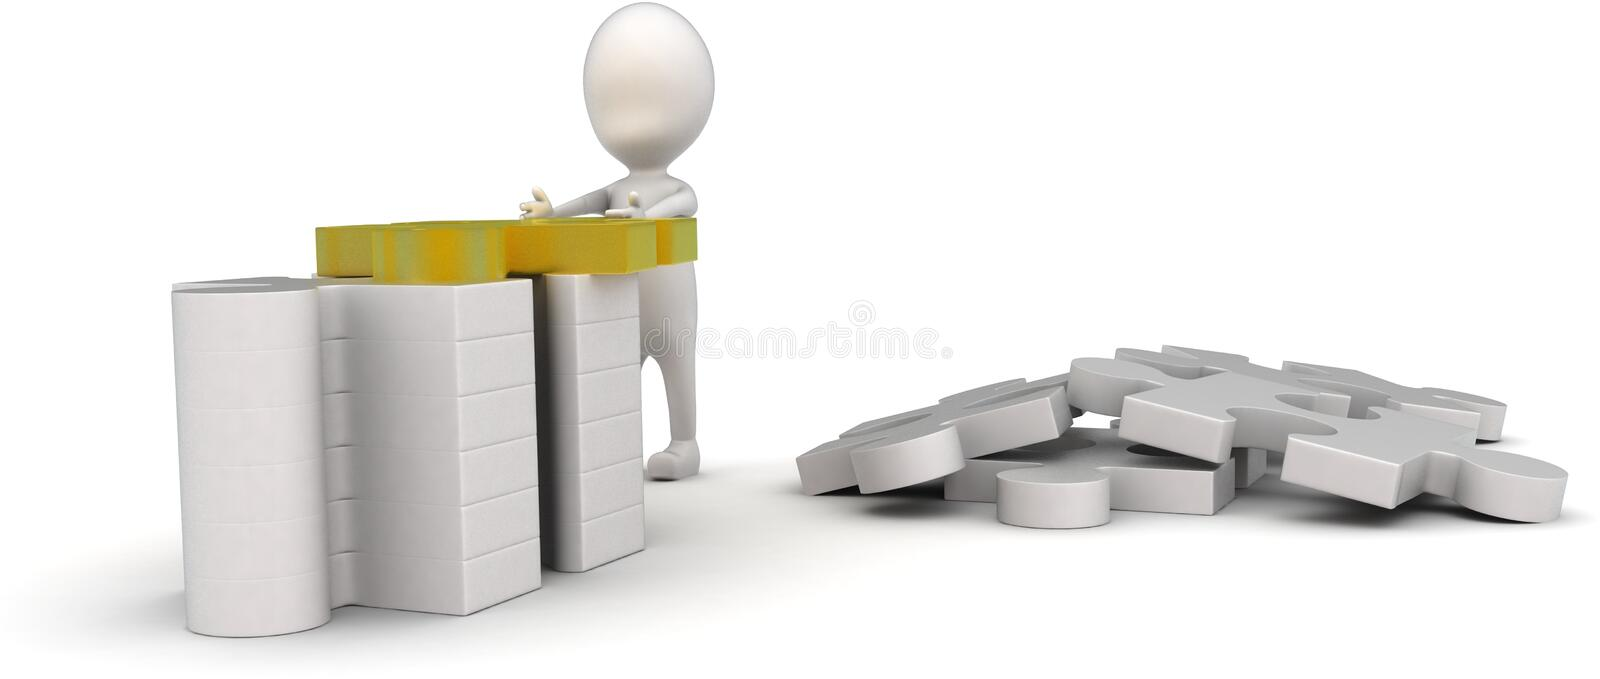 3d man arranging jigsaw puzzle pieces concept. On white background - 3d rendering , front angle view royalty free illustration